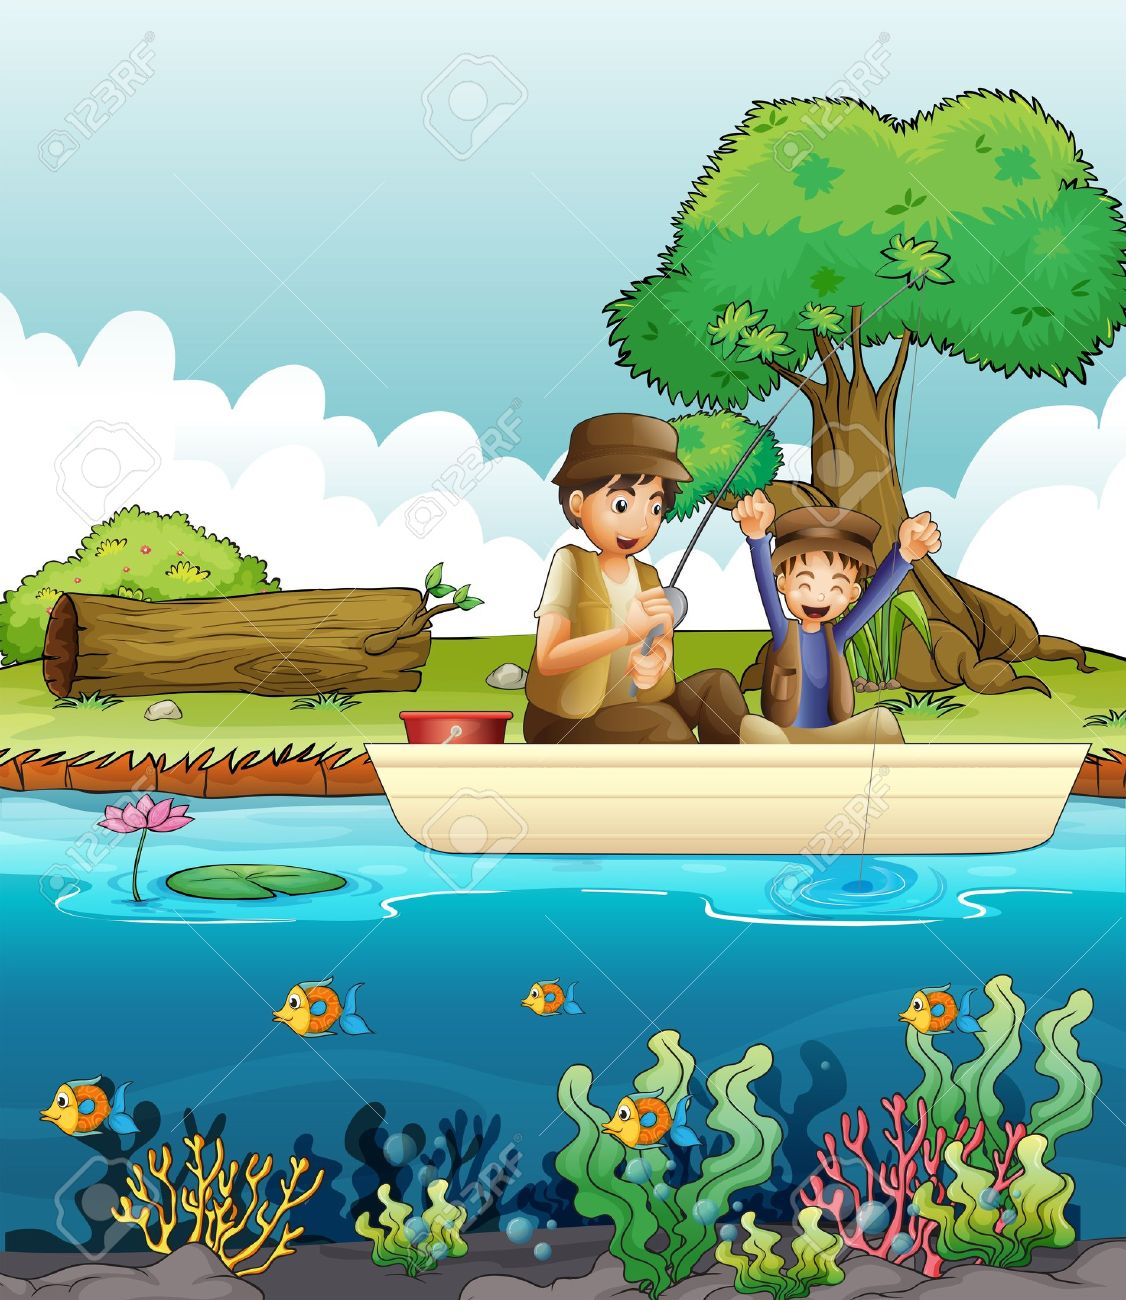 Two people fishing clipart.